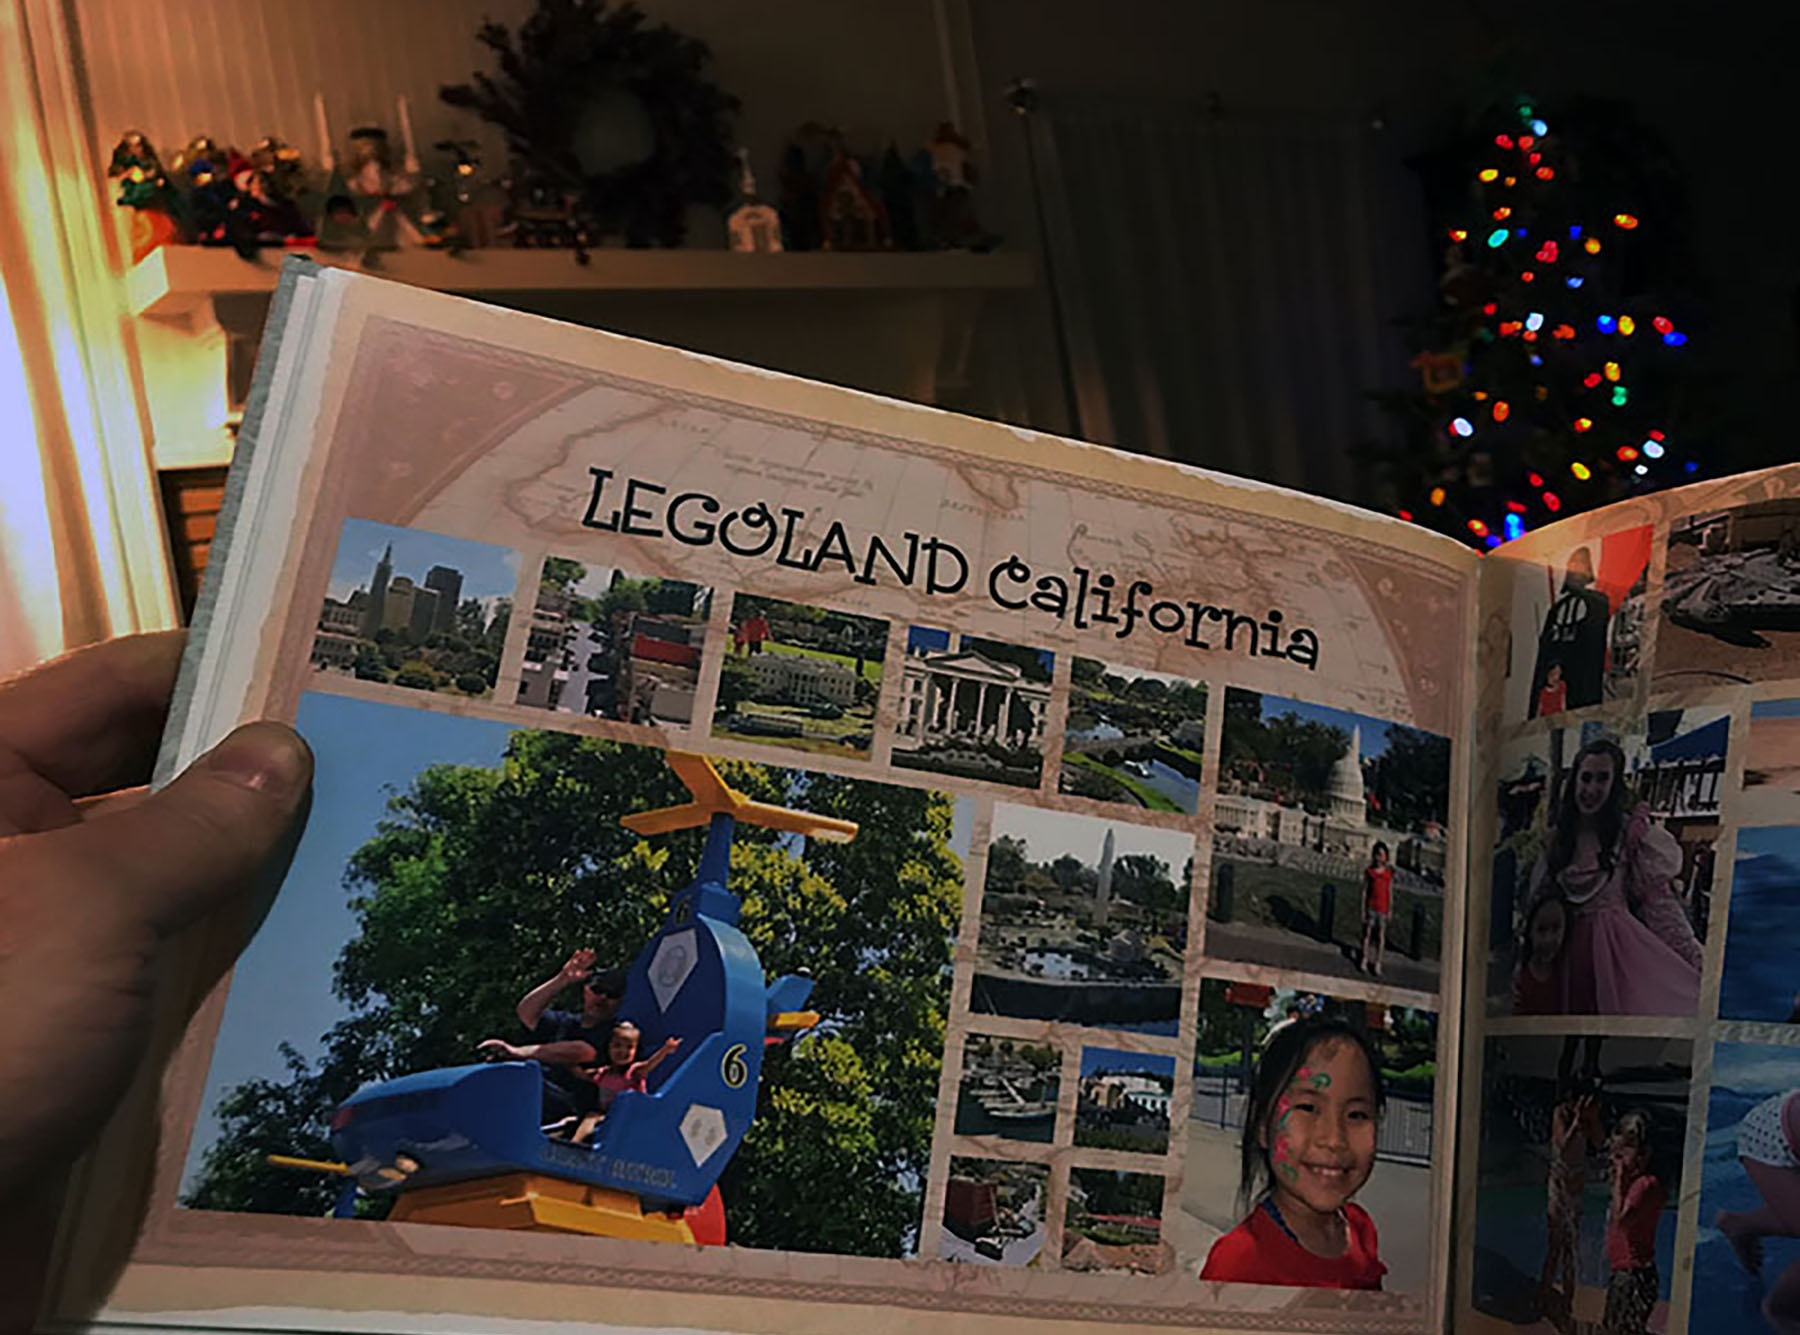 PHOTO BOOKS CAN MAKE THE PERFECT GIFT